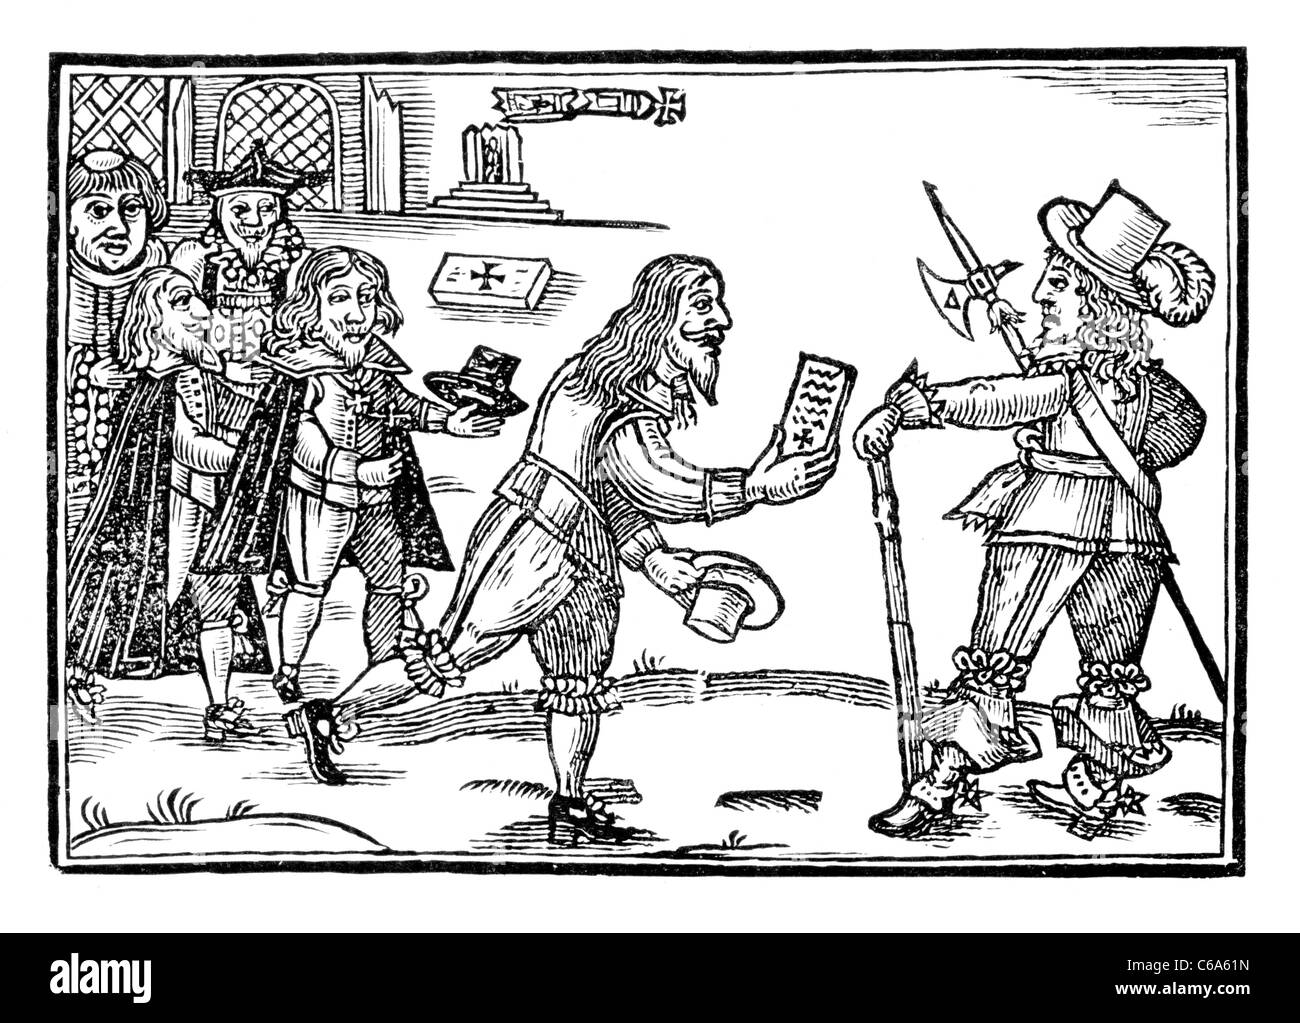 The Humble Petition of Jock of Braid Scotland; Tract of 1648; Black and White Illustration - Stock Image